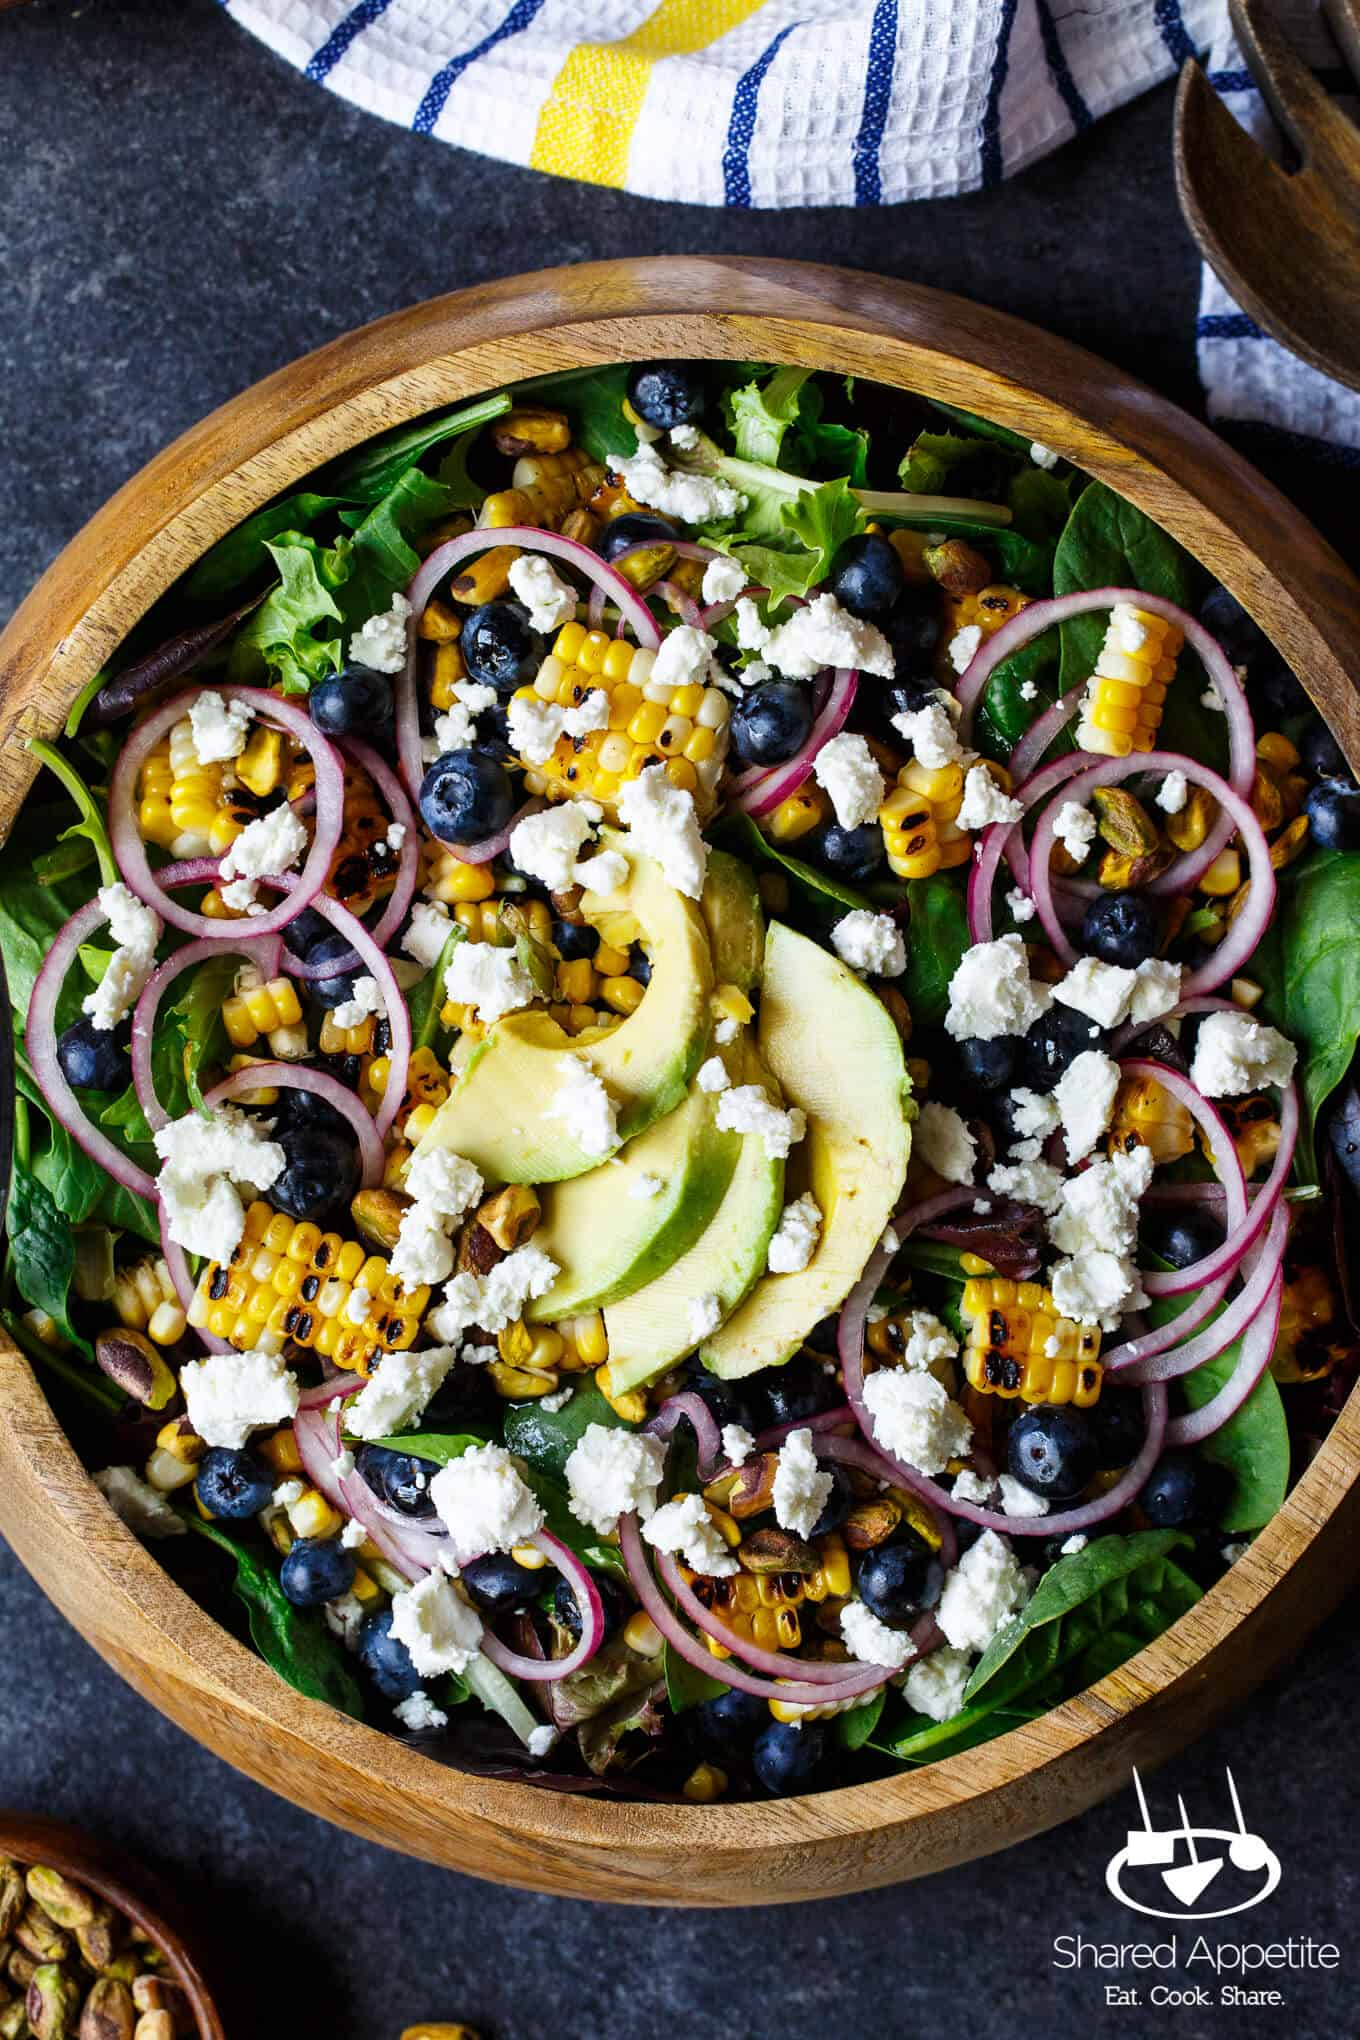 Blueberry, Corn, and Goat Cheese Salad with quick pickled onions, avocado, pistachios, and a bright lemon vinaigrette | sharedappetite.com